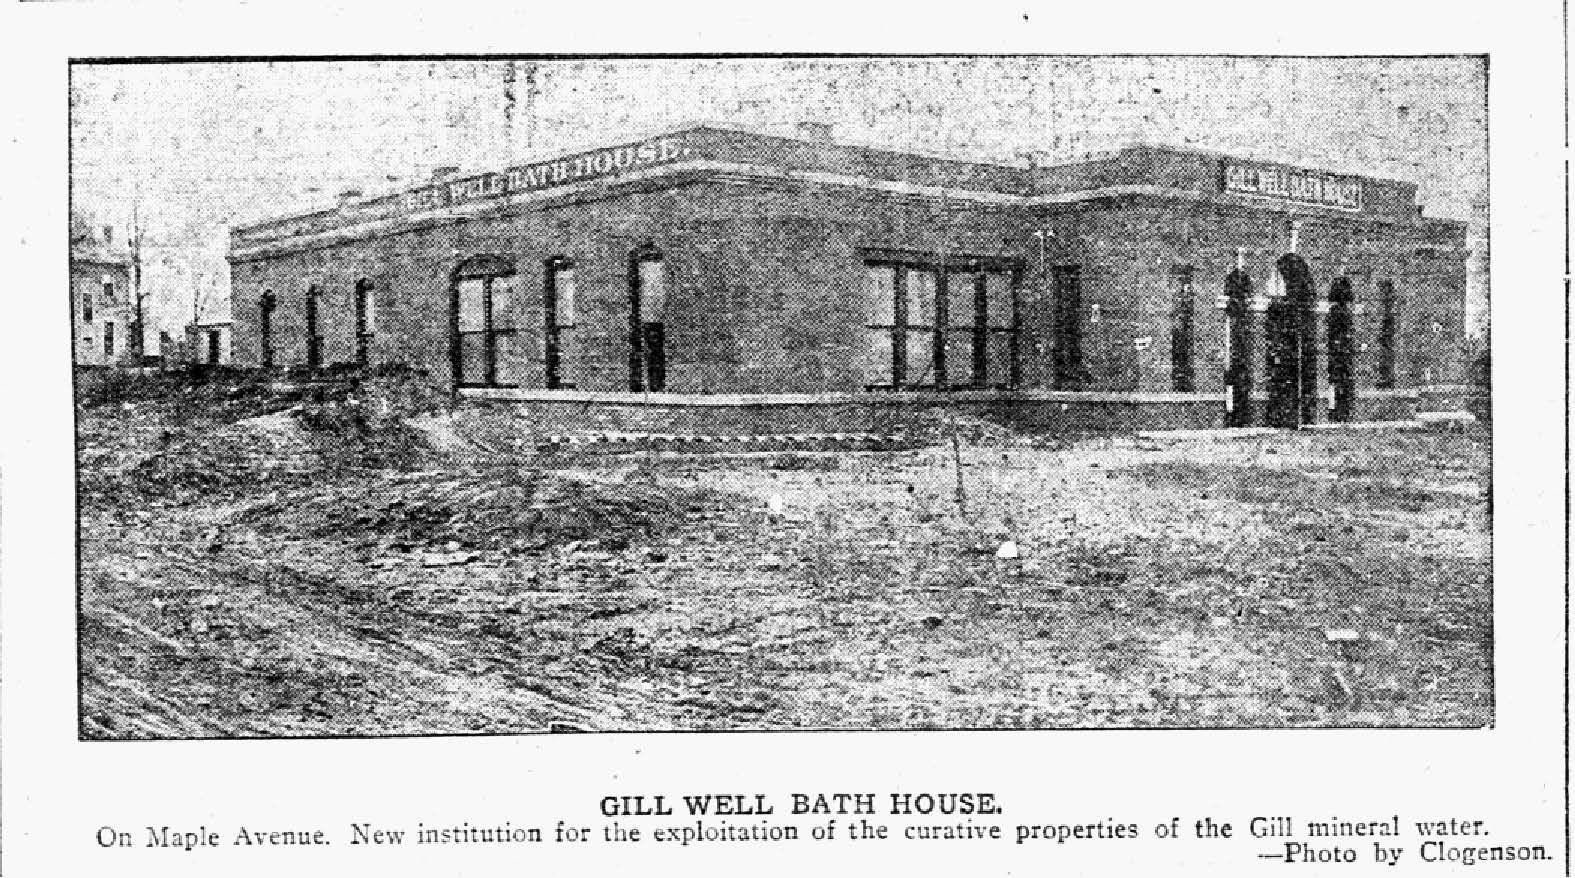 Photograph of the Gill Well Bath House off Maple Avenue. Staff photograph published in The Dallas Morning News on Jan. 13, 1907.